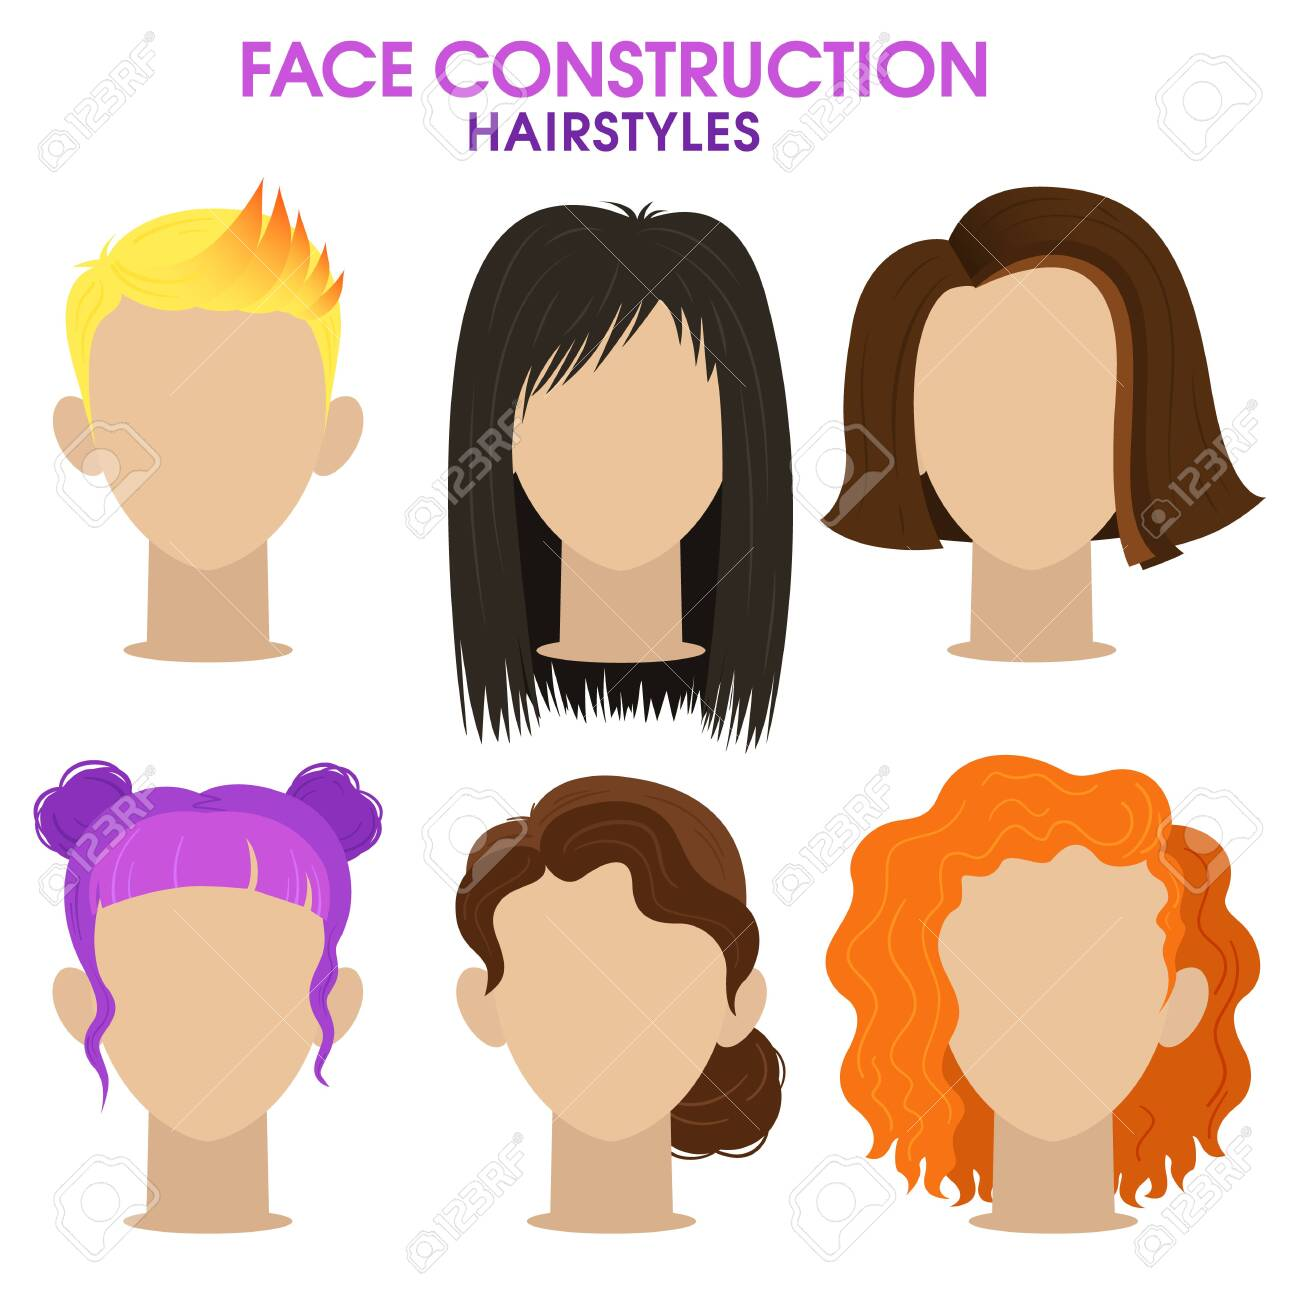 Hairstyle Different Haircuts And Hair Color Woman Face Constructor Royalty Free Cliparts Vectors And Stock Illustration Image 129259301